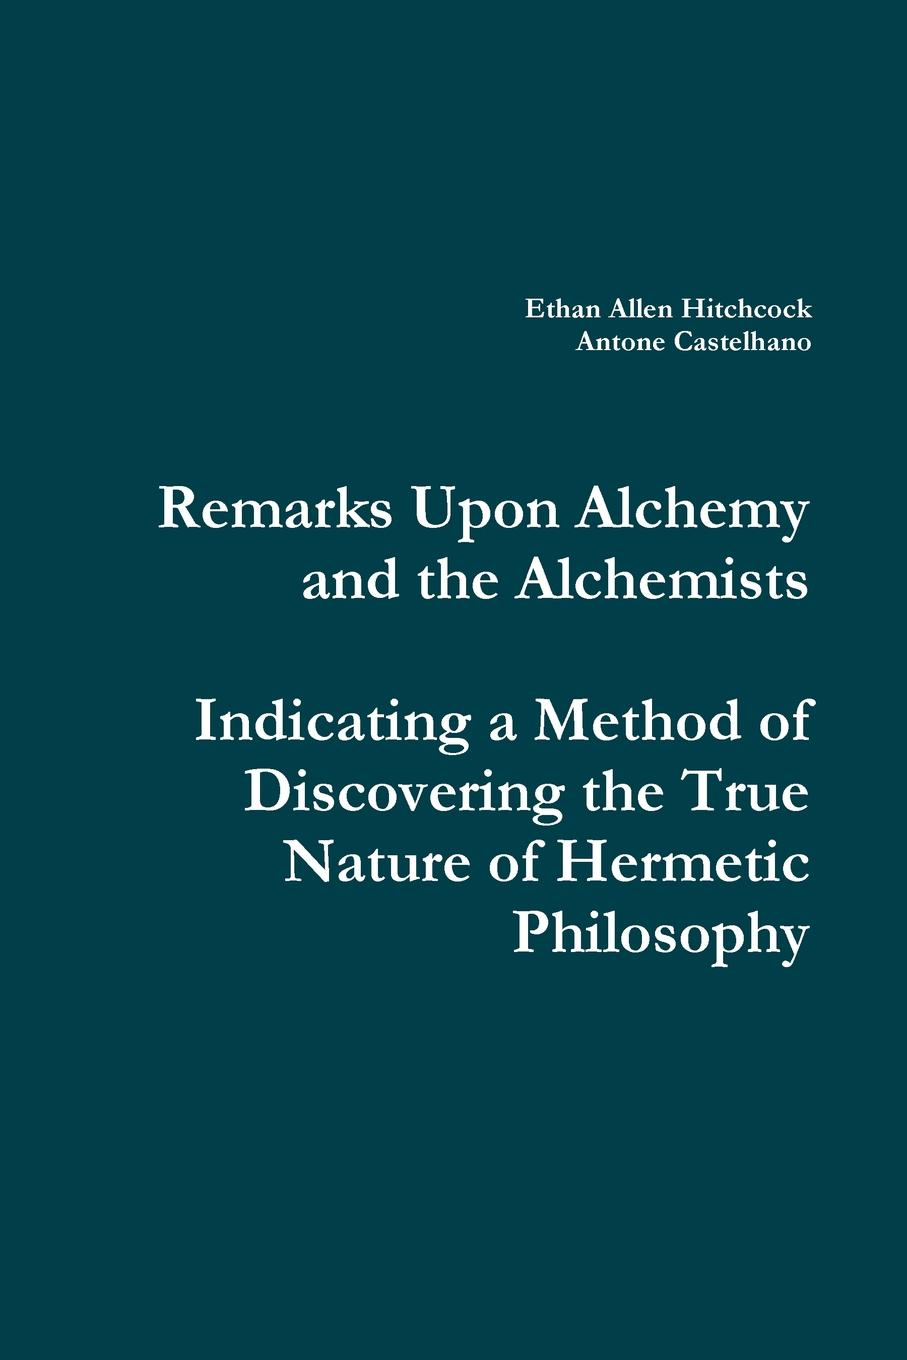 Ethan Allen Hitchcock, Antone Castelhano Remarks Upon Alchemy and the Alchemists. Indicating a Method of Discovering the True Nature of Hermetic Philosophy wood michael in search of the dark ages